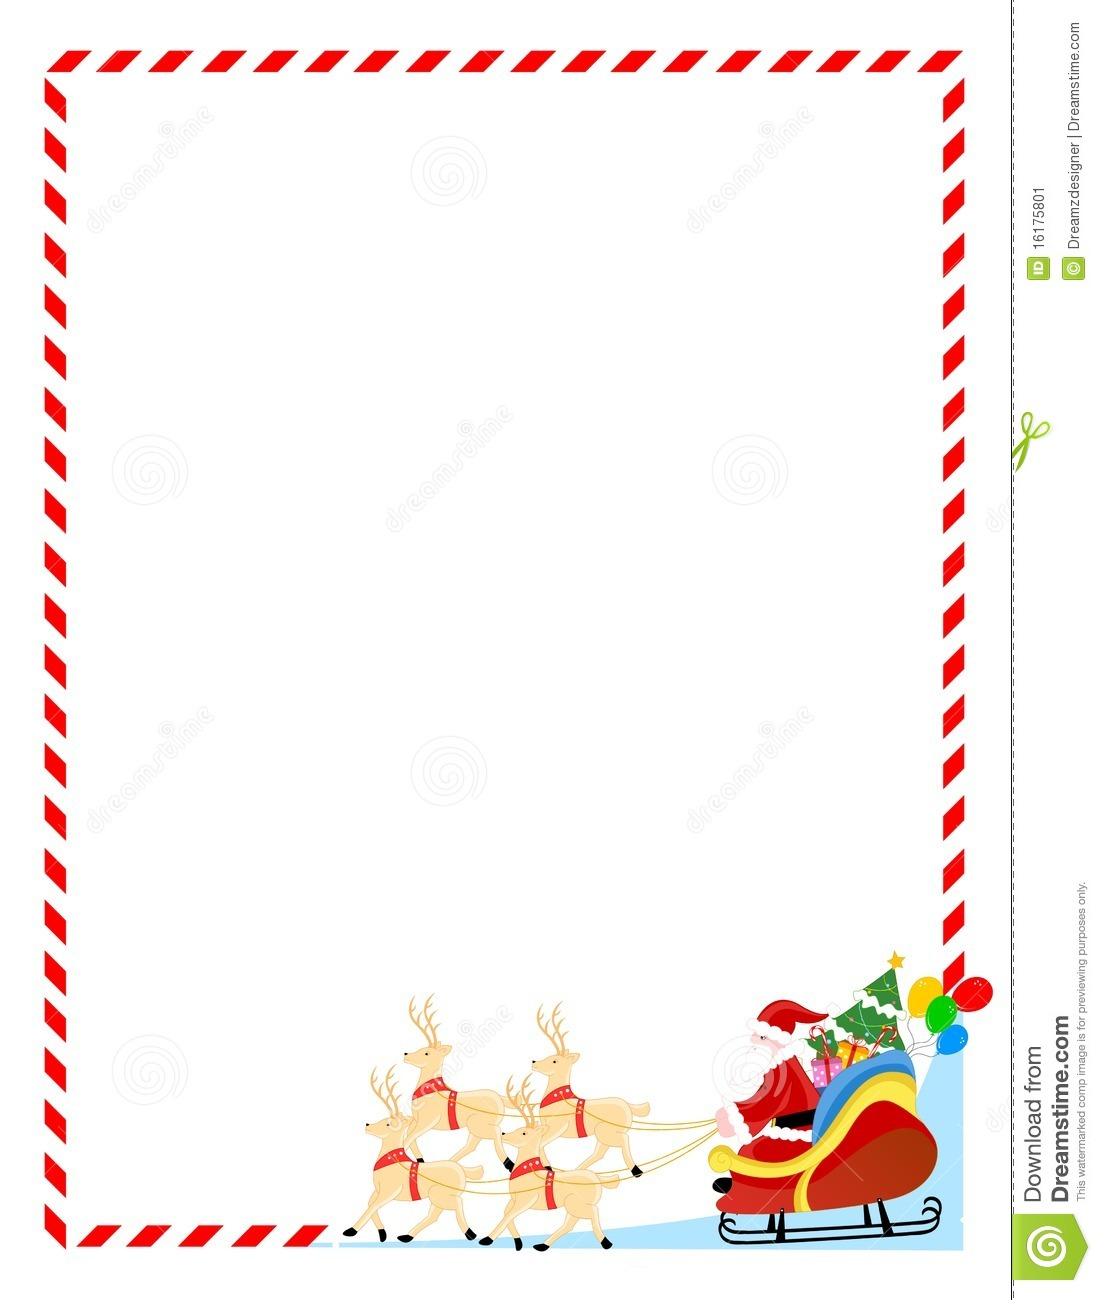 Santa Claus on a sledge with cute deers colorful Christmas border.